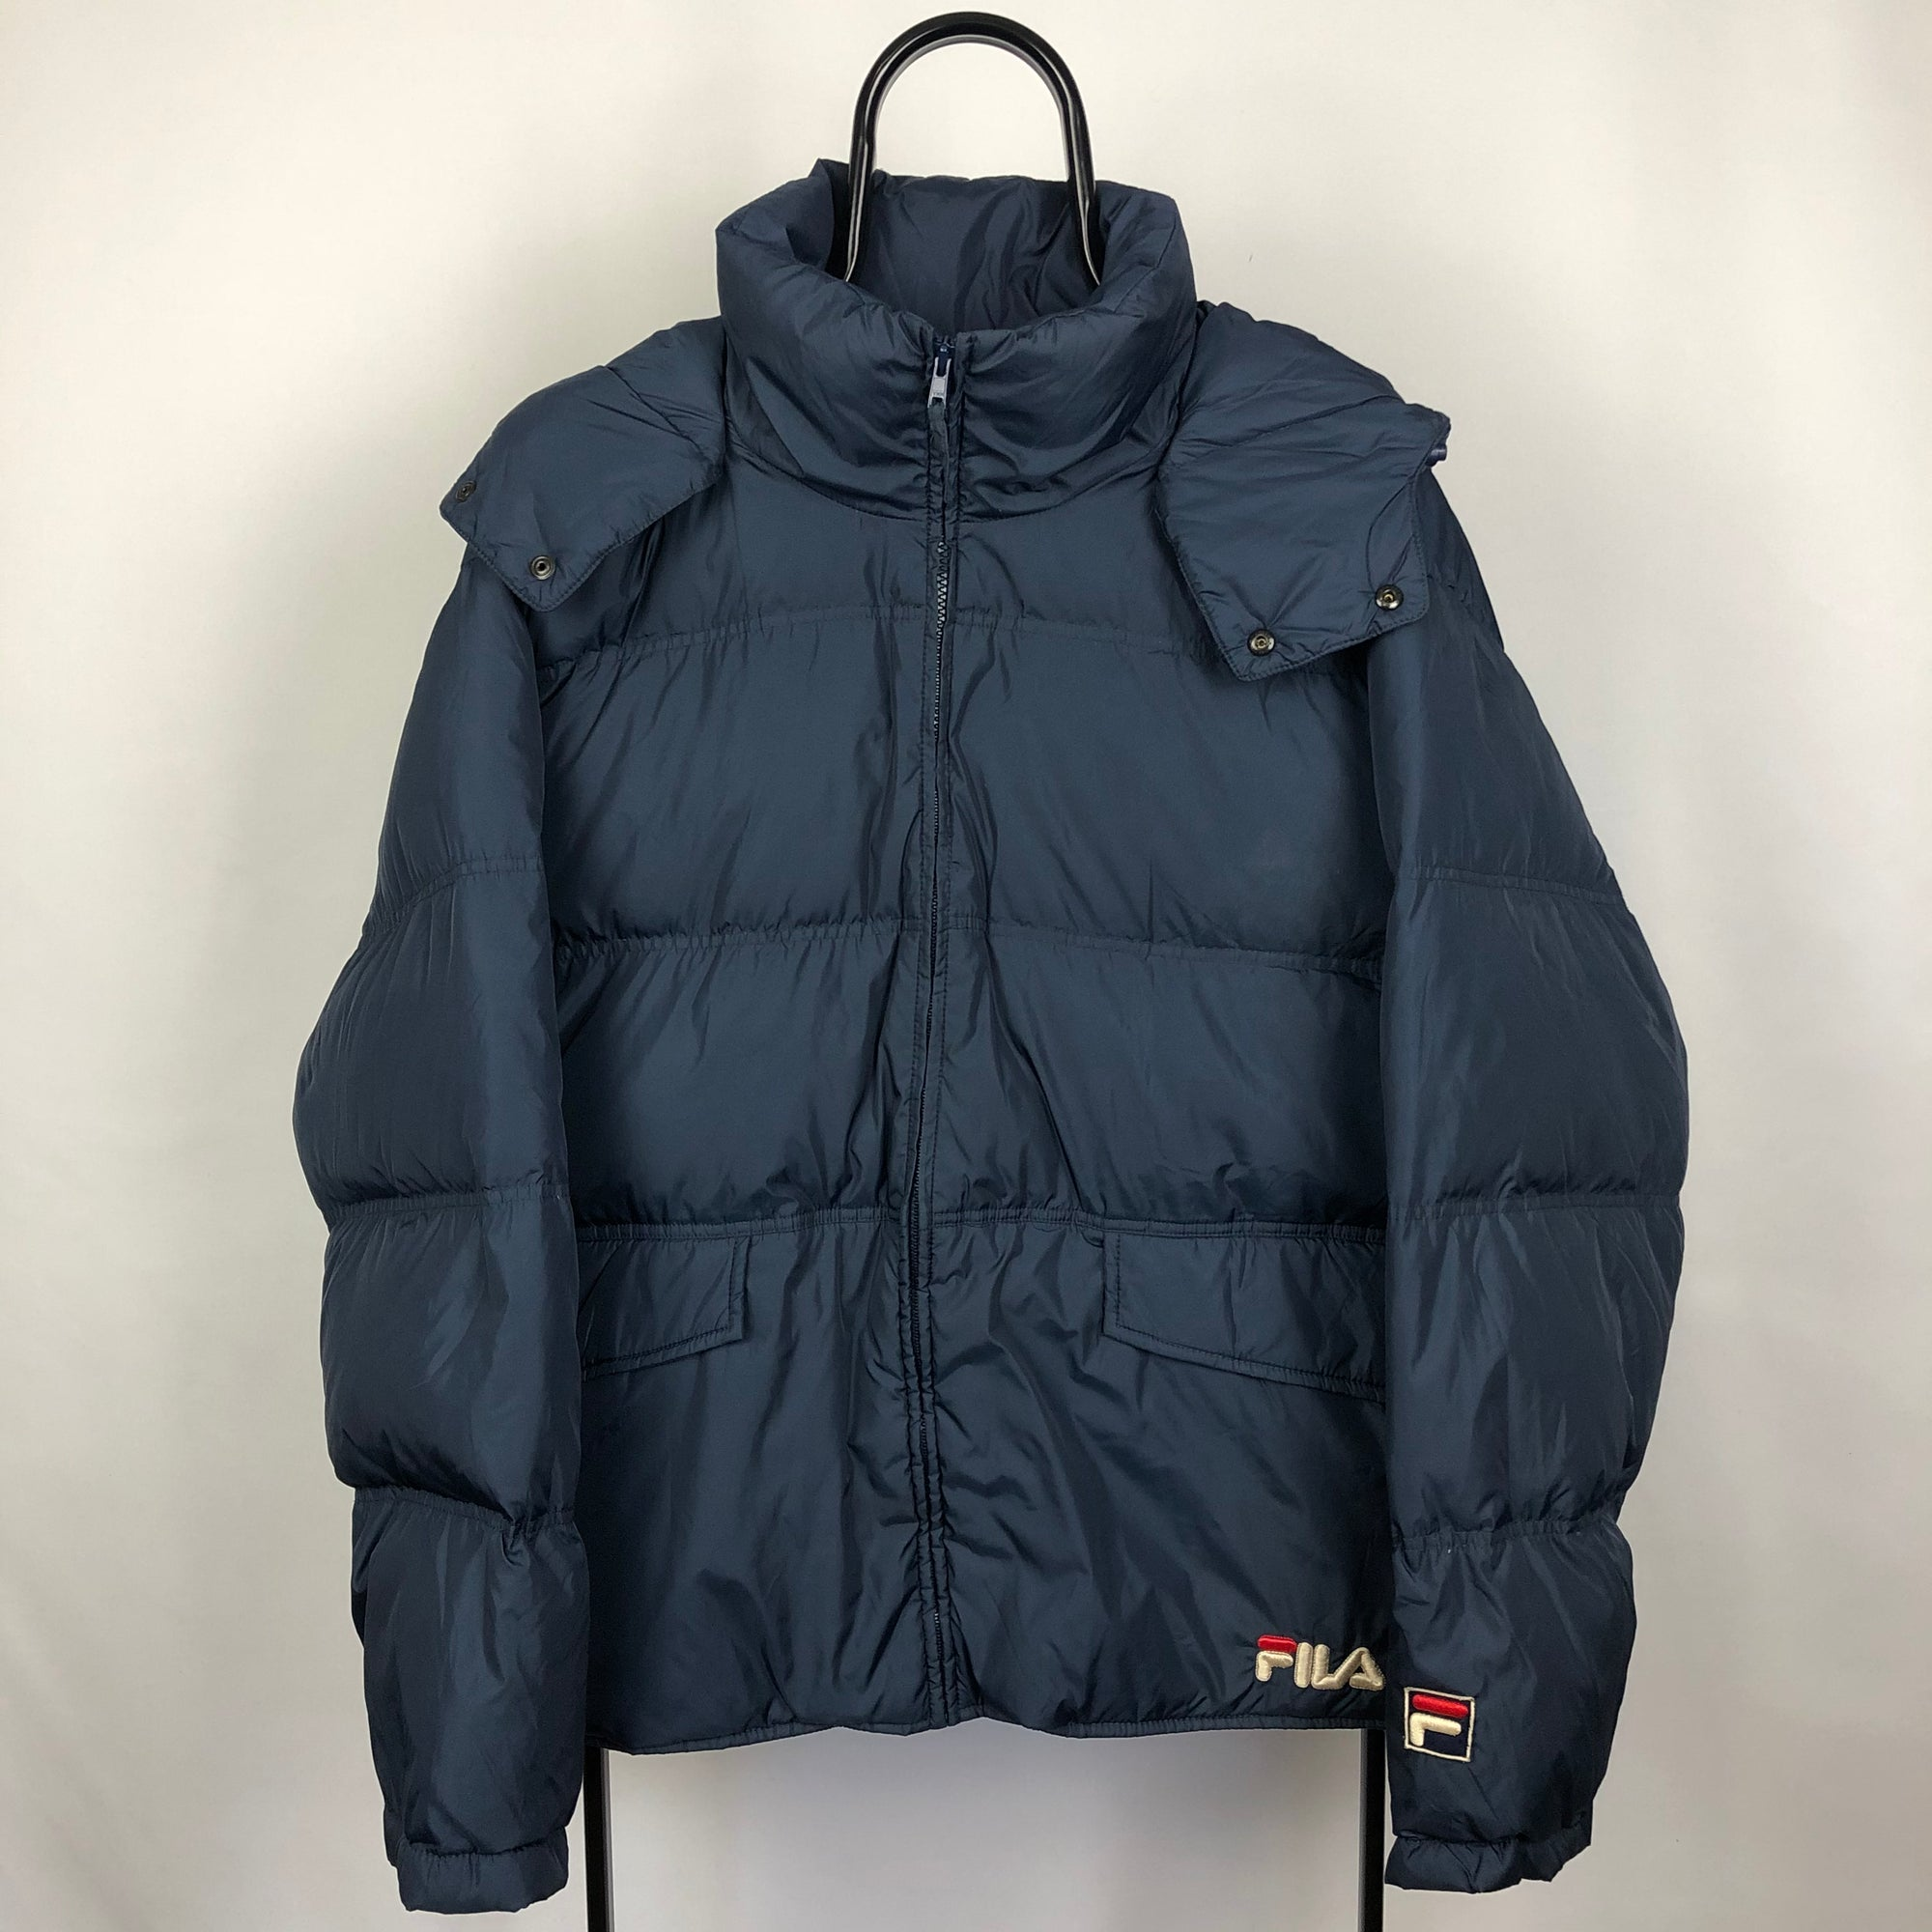 Fila Navy Puffer - Men's Large/Women's XL